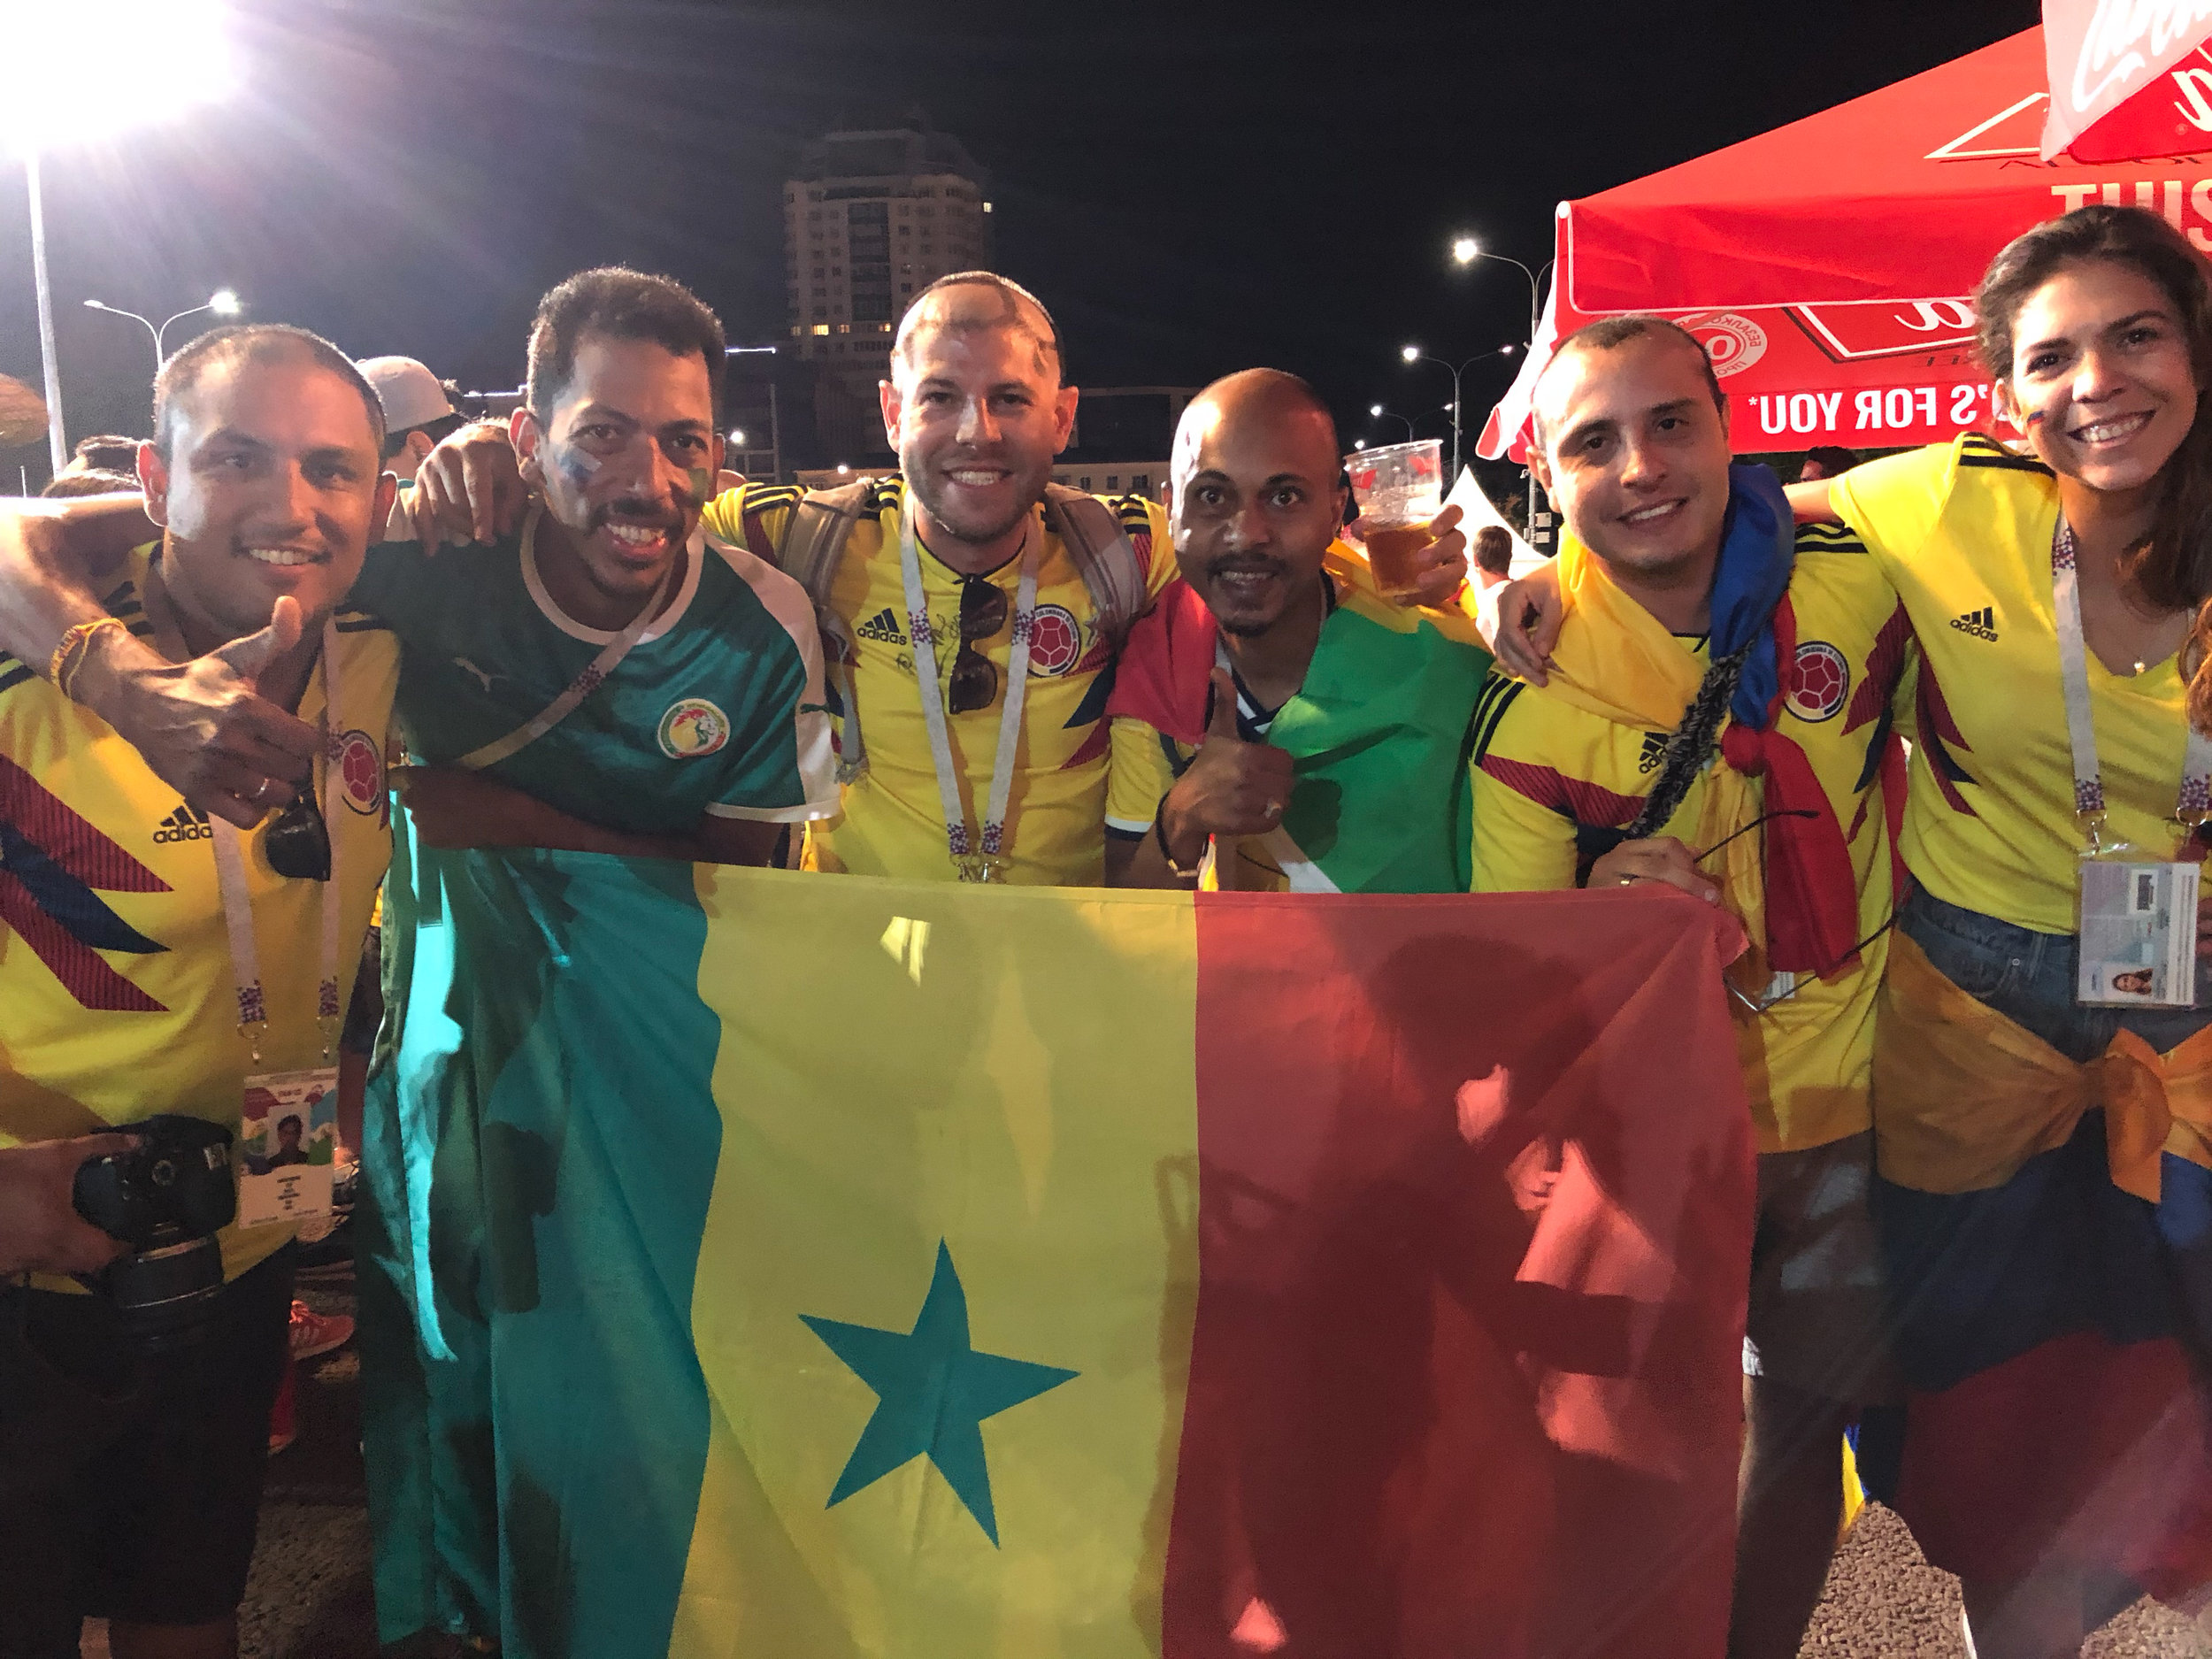 Despite the final score, the Senegalese fans were always in a good mood and taking pictures with all the Colombian fans.